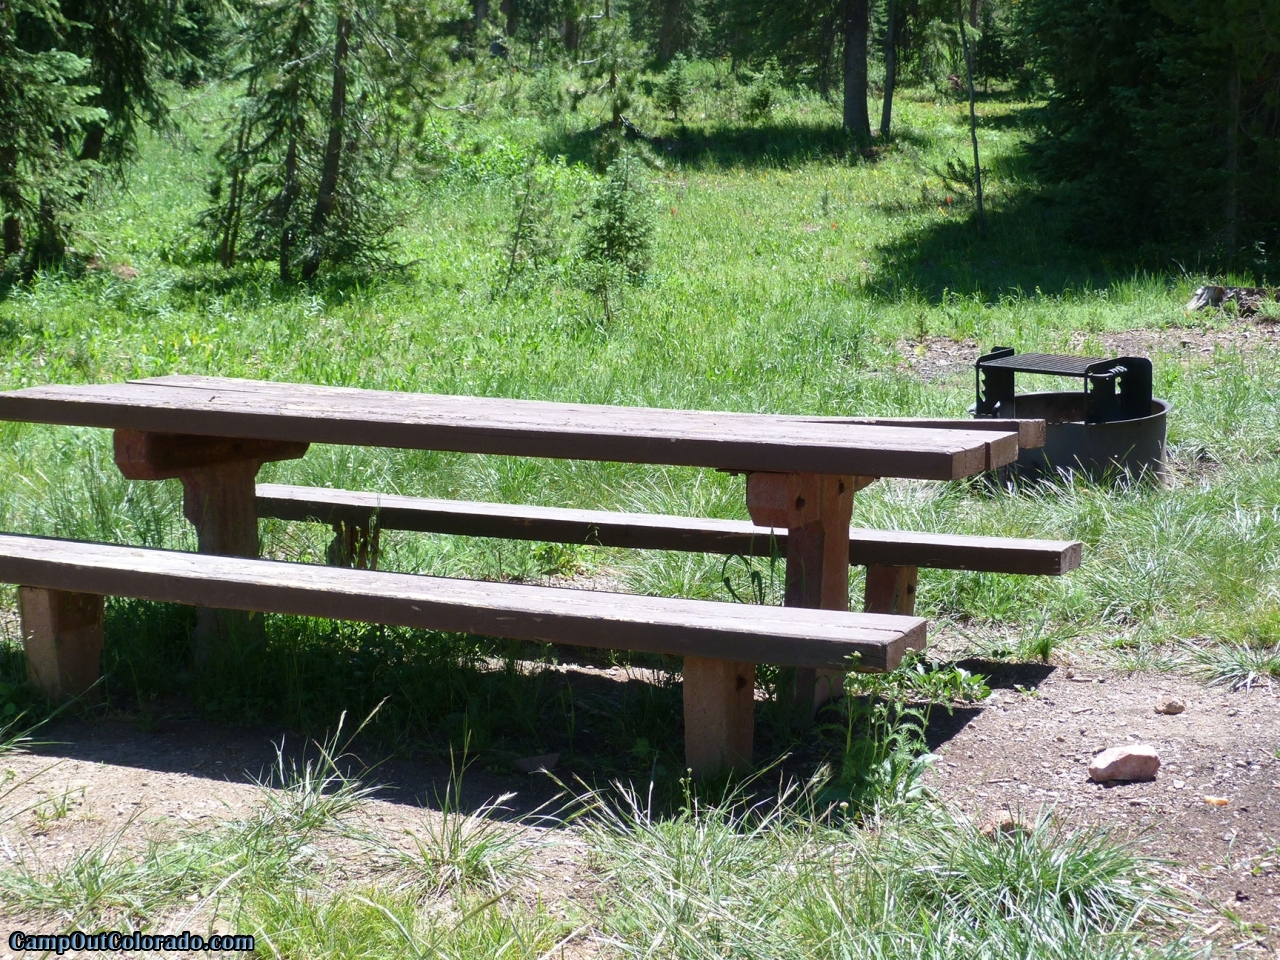 campoutcolorado-meadows-campground-rabbit-ears-table-fire-pit